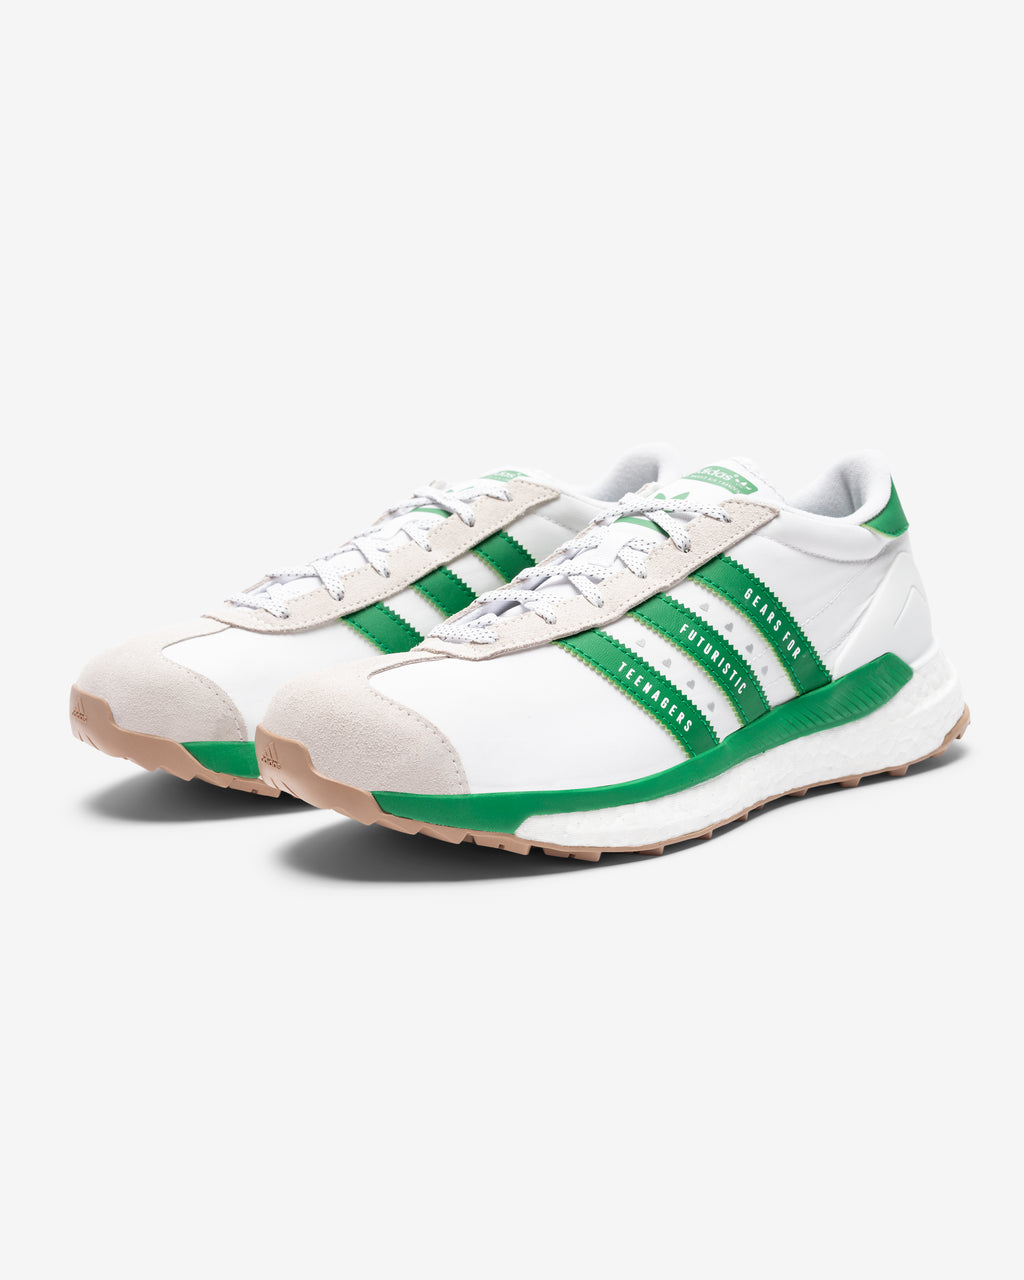 ADIDAS X HUMAN MADE COUNTRY FREE HIKER - GREEN